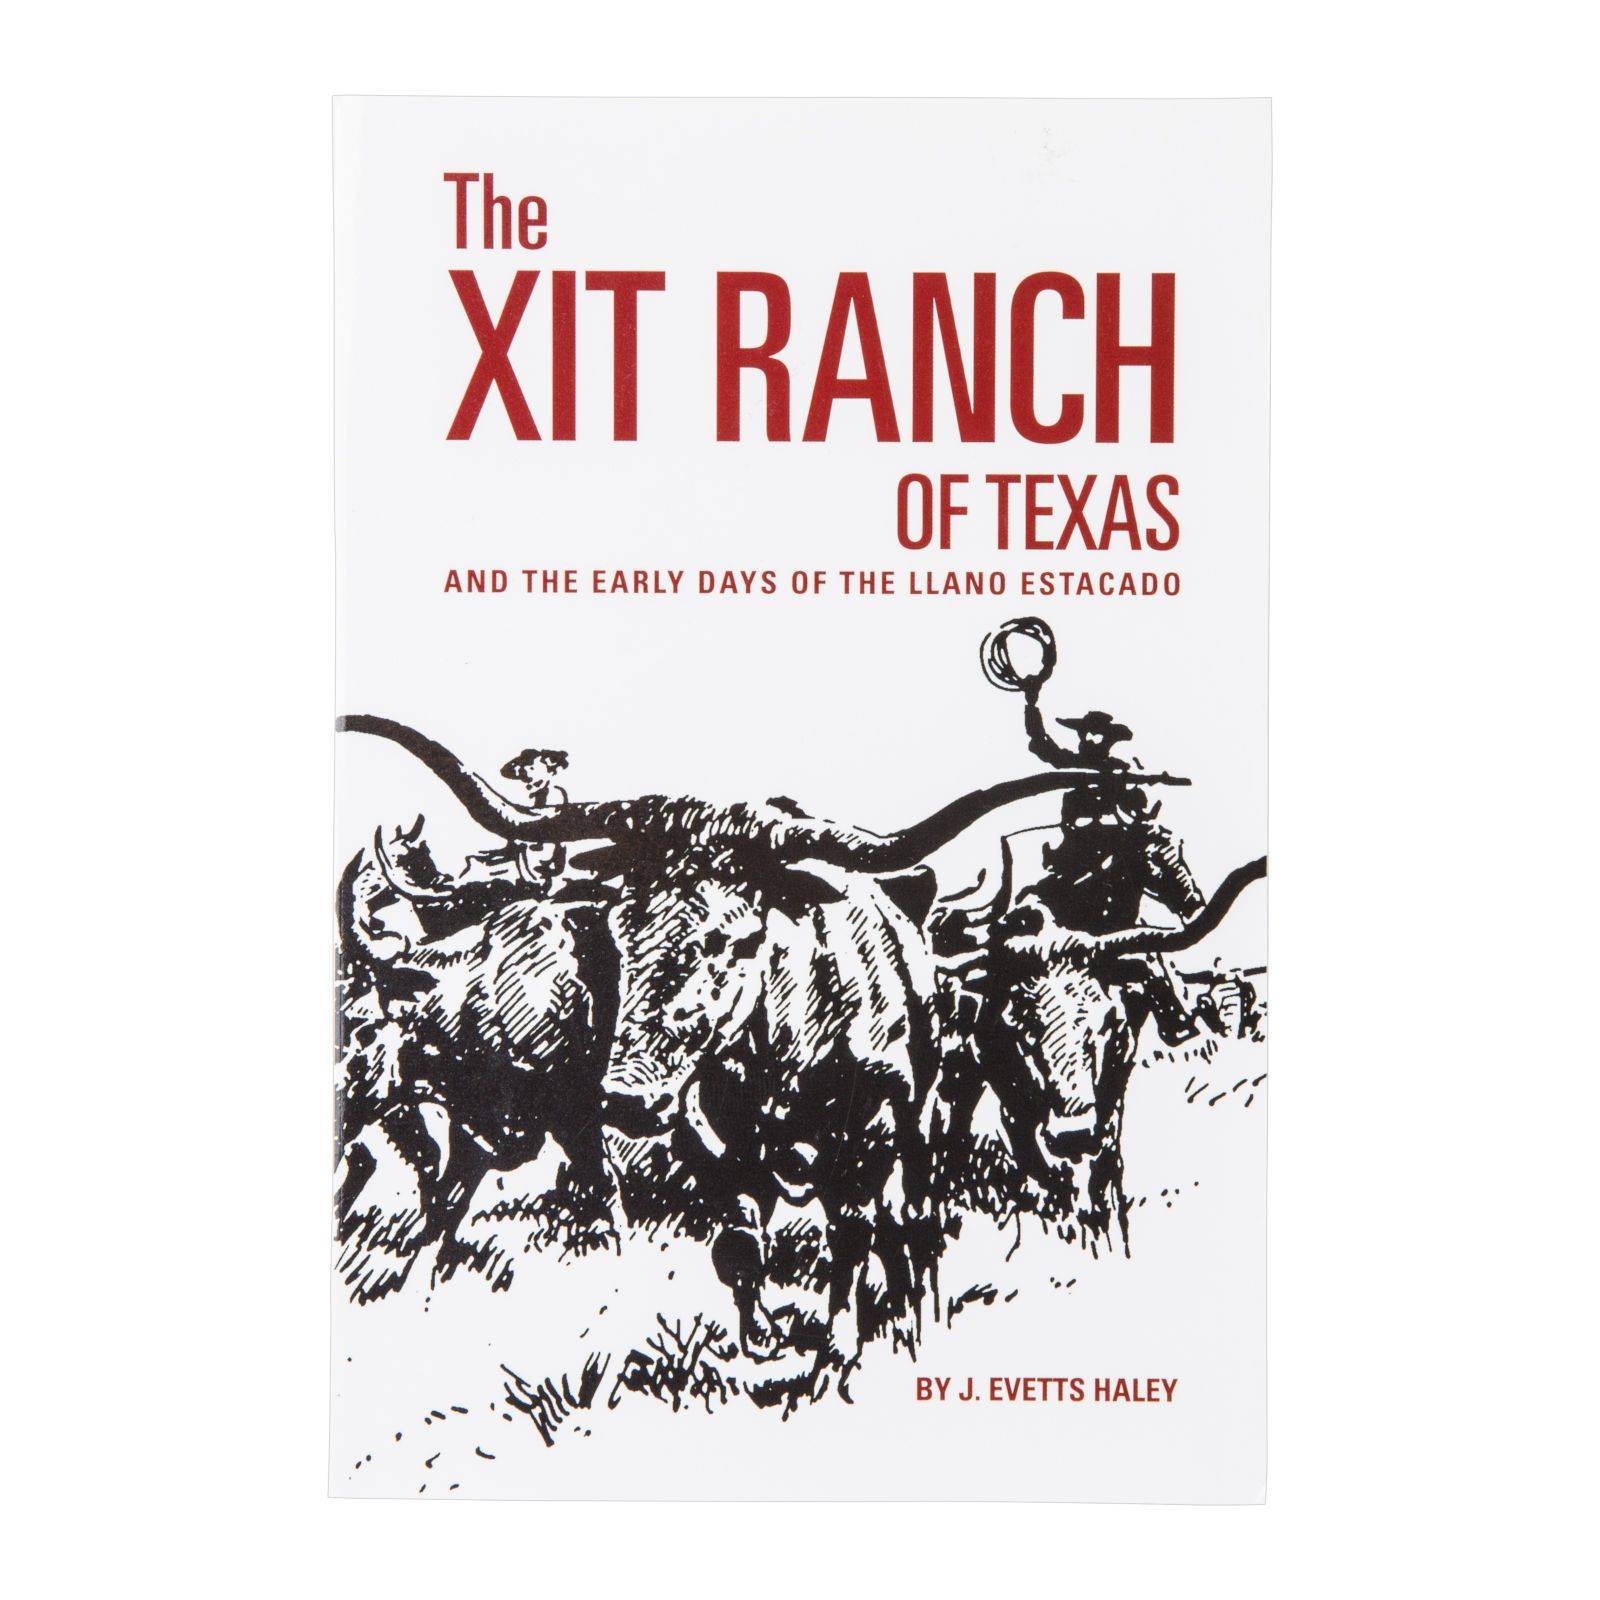 Map Of Xit Ranch Texas.Xit Ranch Of Texas And The Early Days Of Llano Estacado